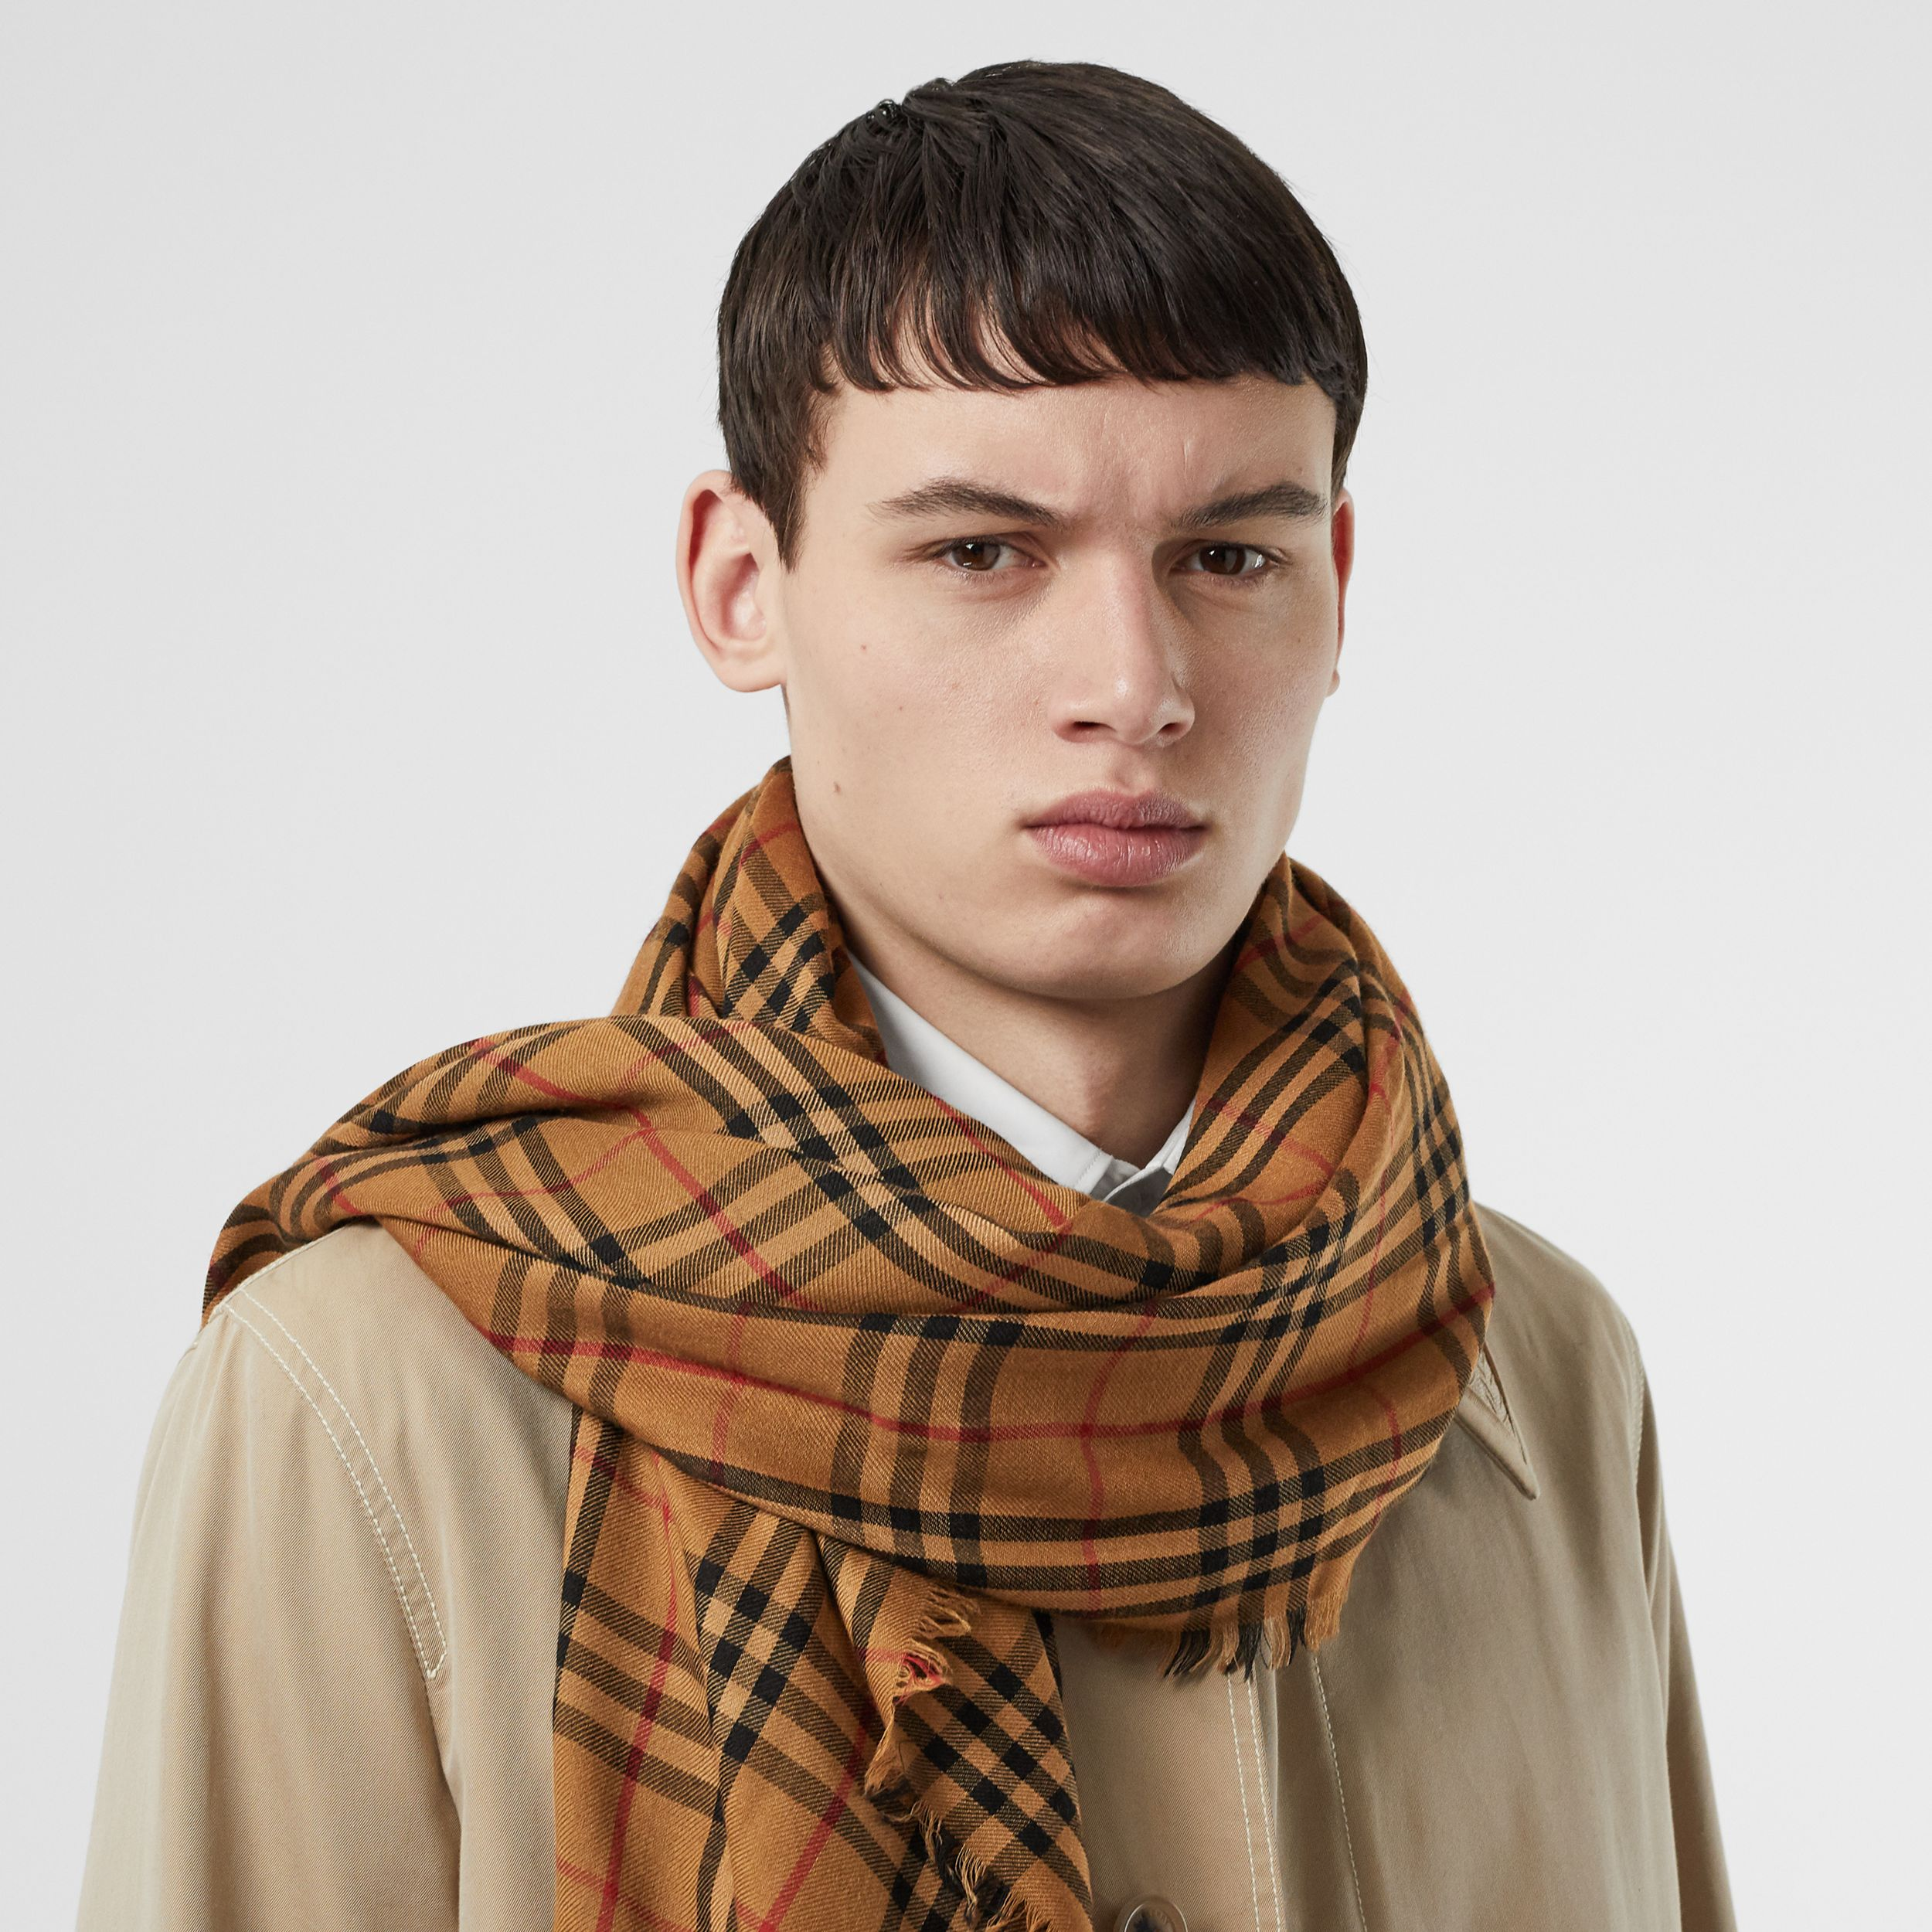 Embroidered Vintage Check Lightweight Cashmere Scarf in Overdyed Camel | Burberry - 4